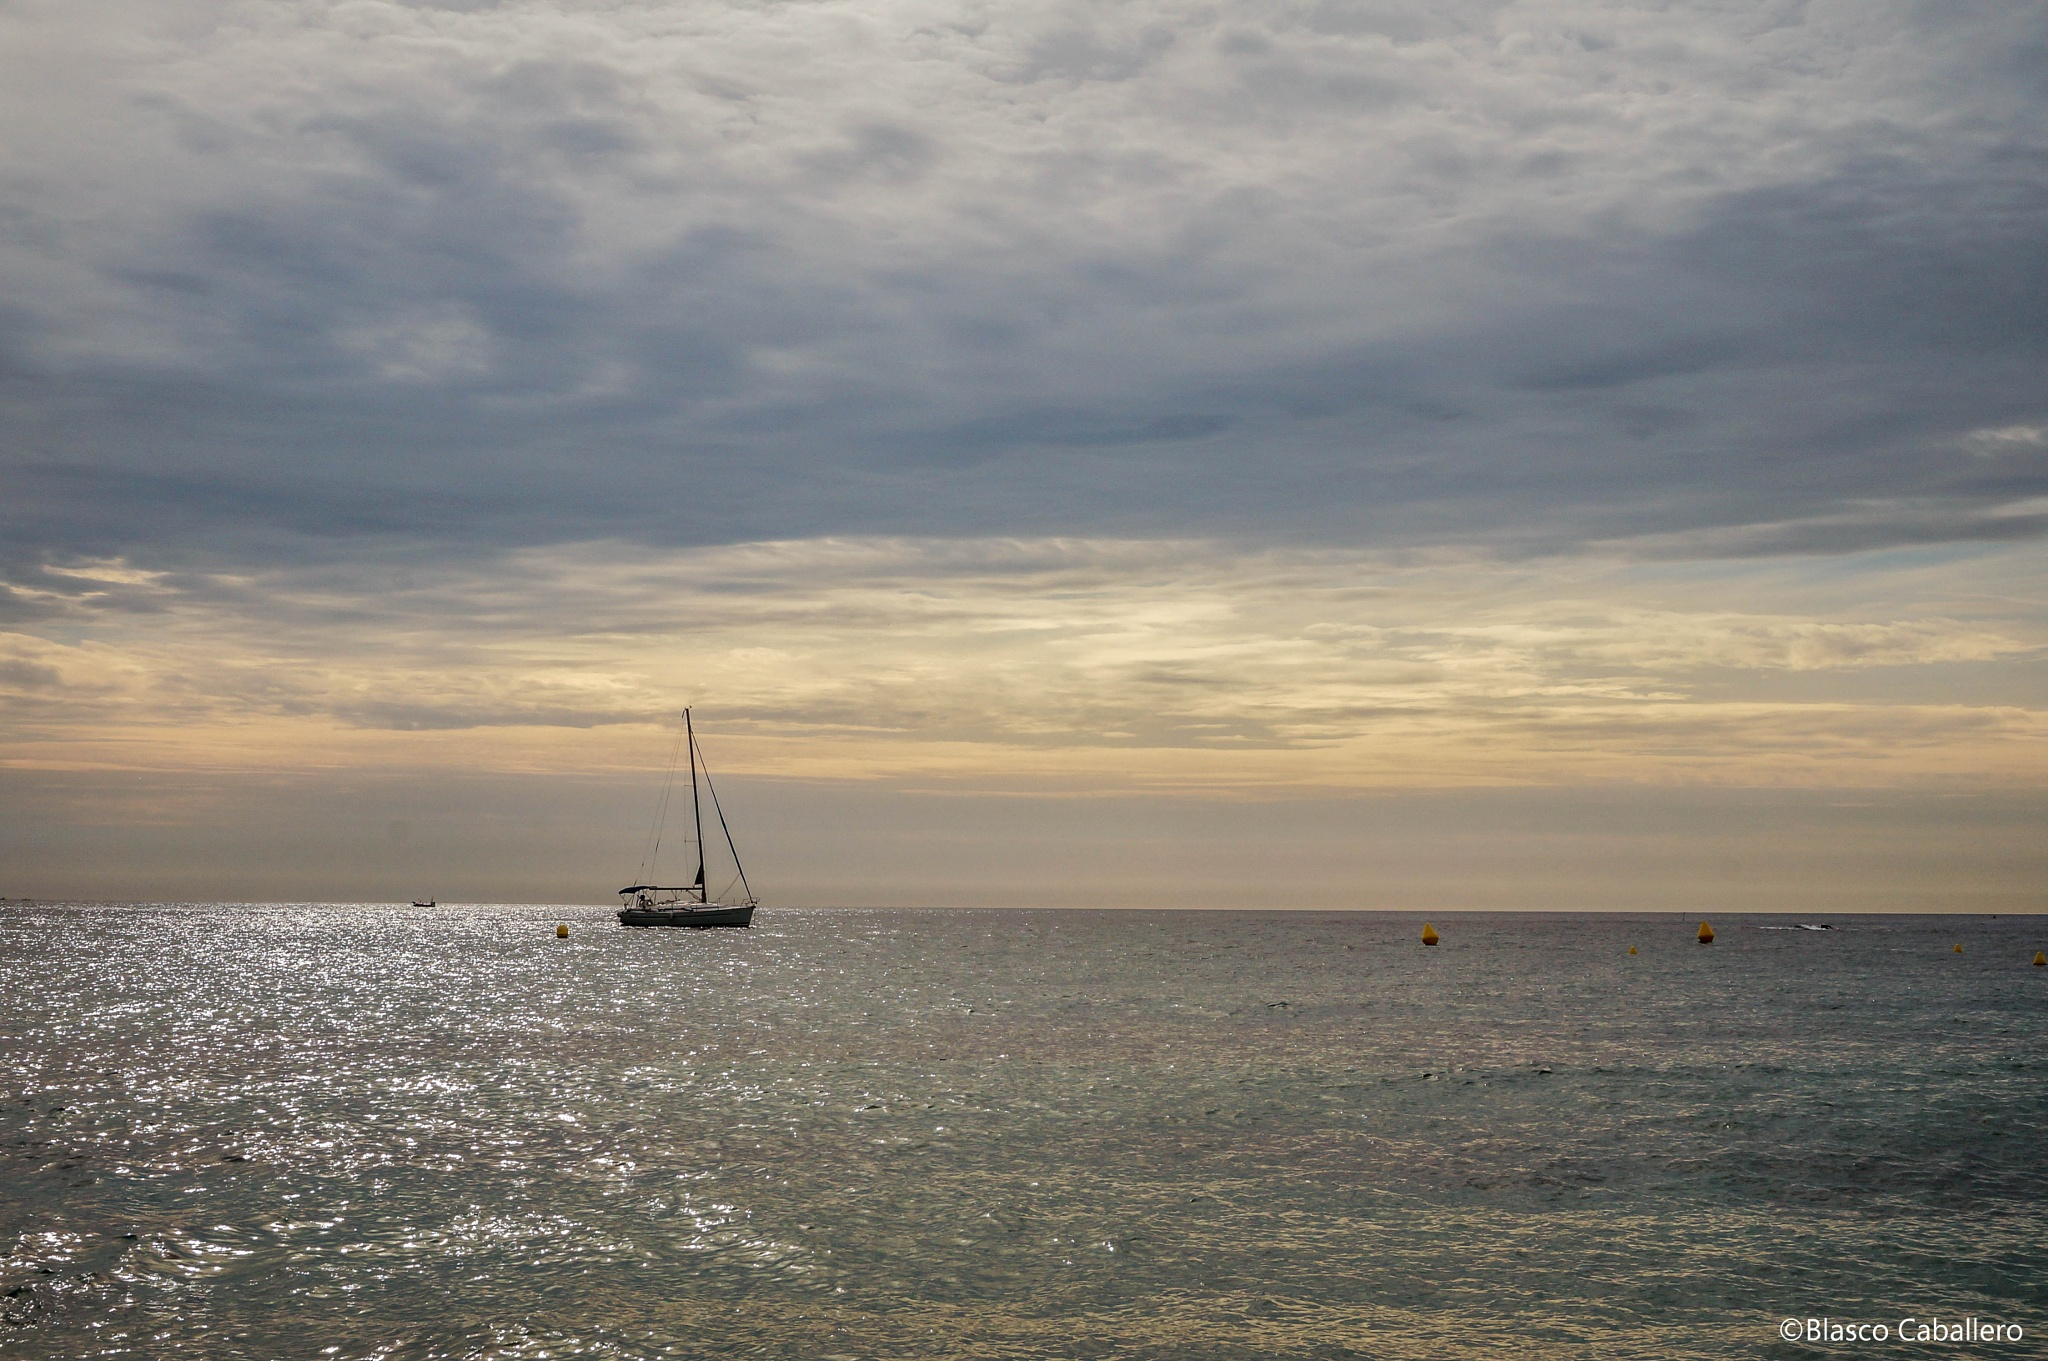 Sailboat on the horizon by Blasco Caballero